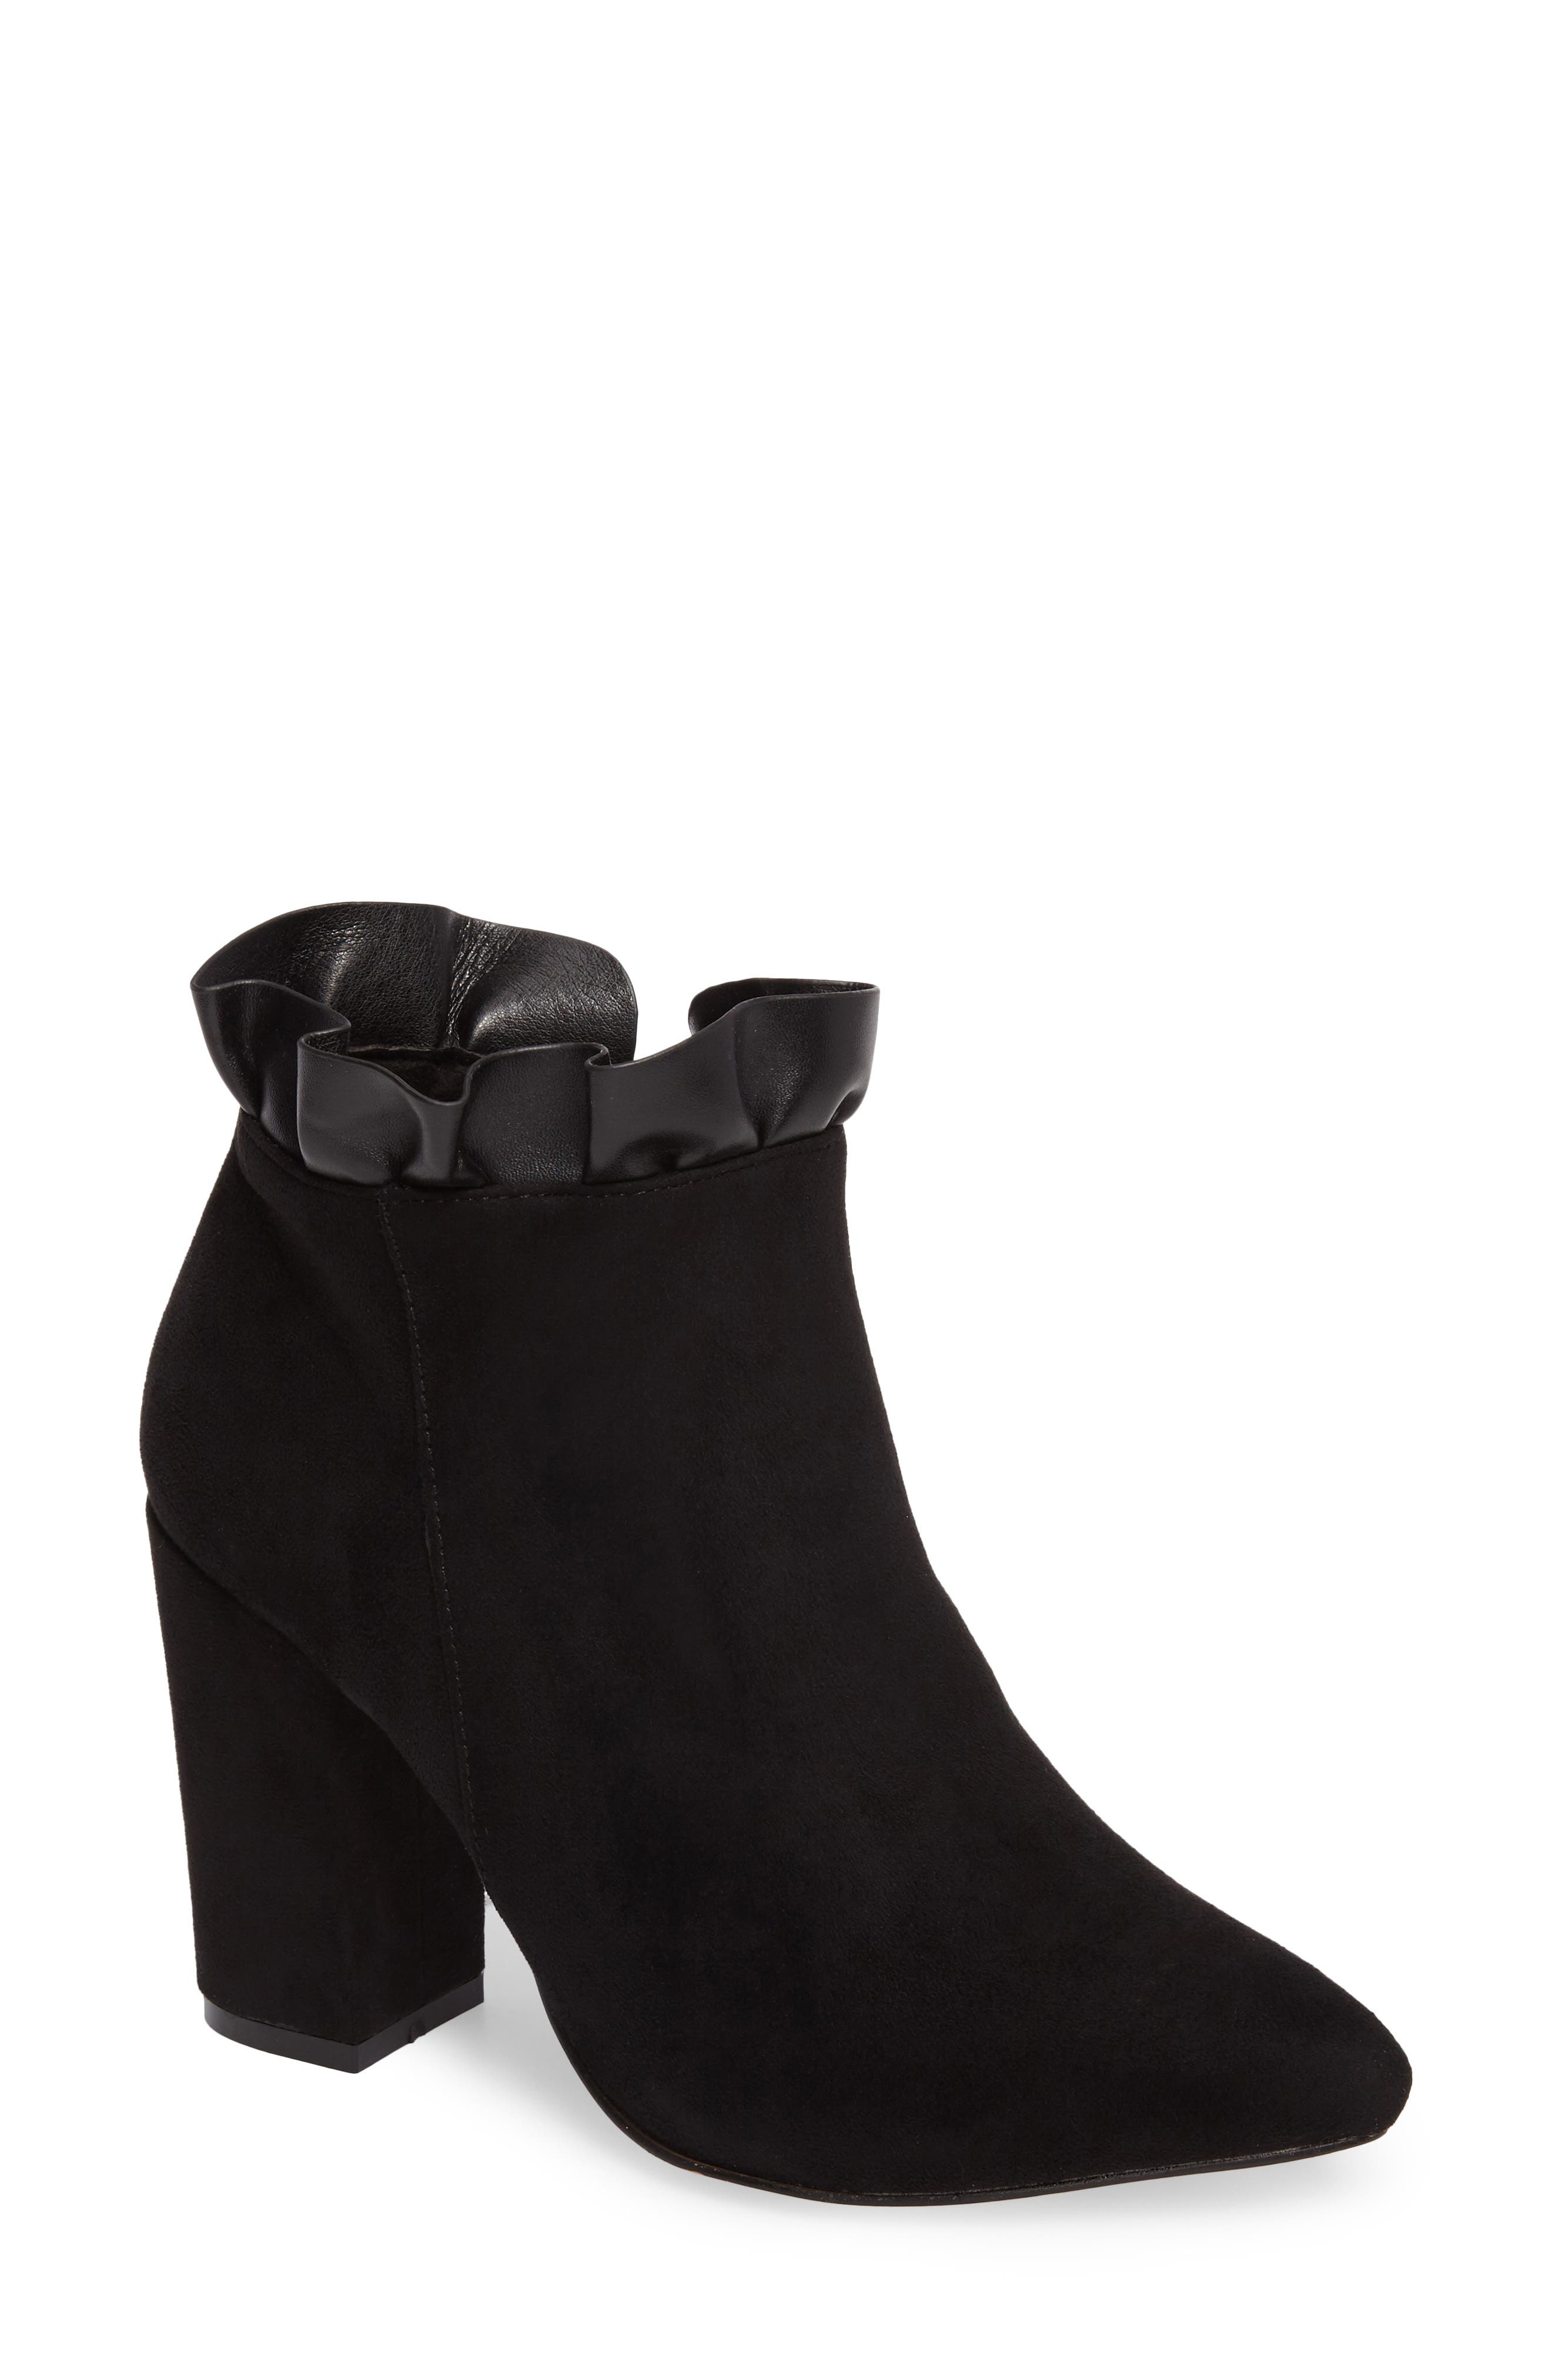 Katana Pointy Toe Bootie,                             Main thumbnail 1, color,